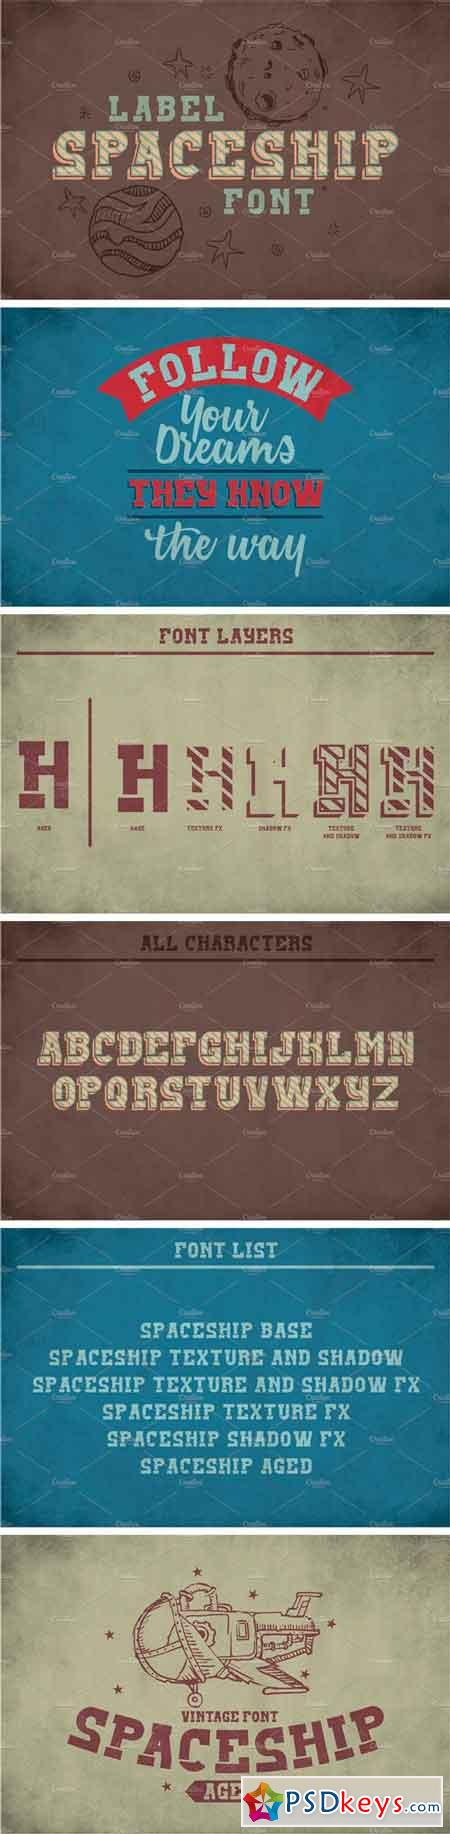 Spaceship Vintage Label Typeface 2295151